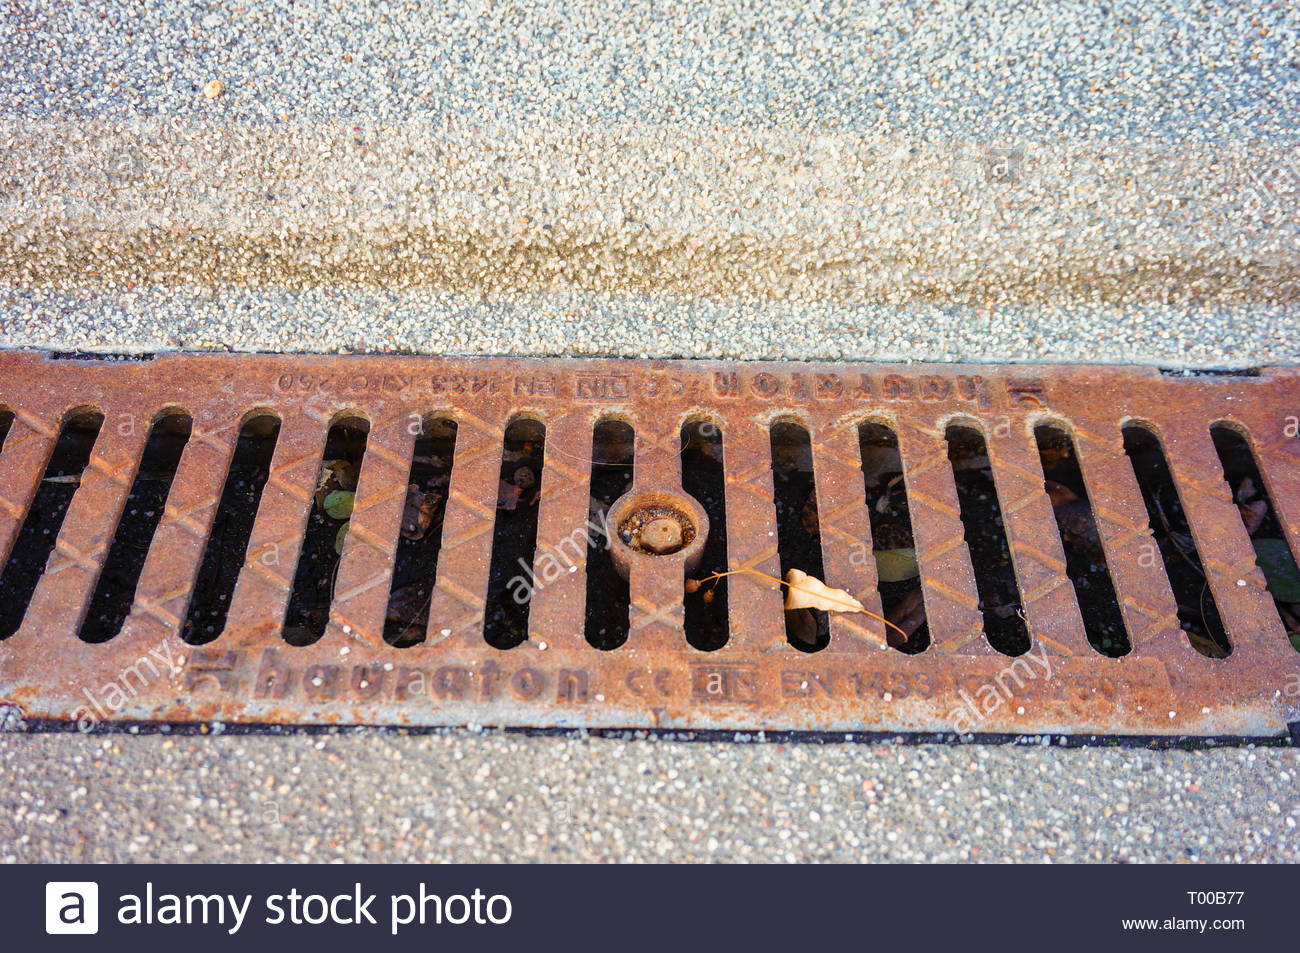 Poznan, Poland - October 31, 2018: Metal rain drain by a sidewalk in the city. Stock Photo